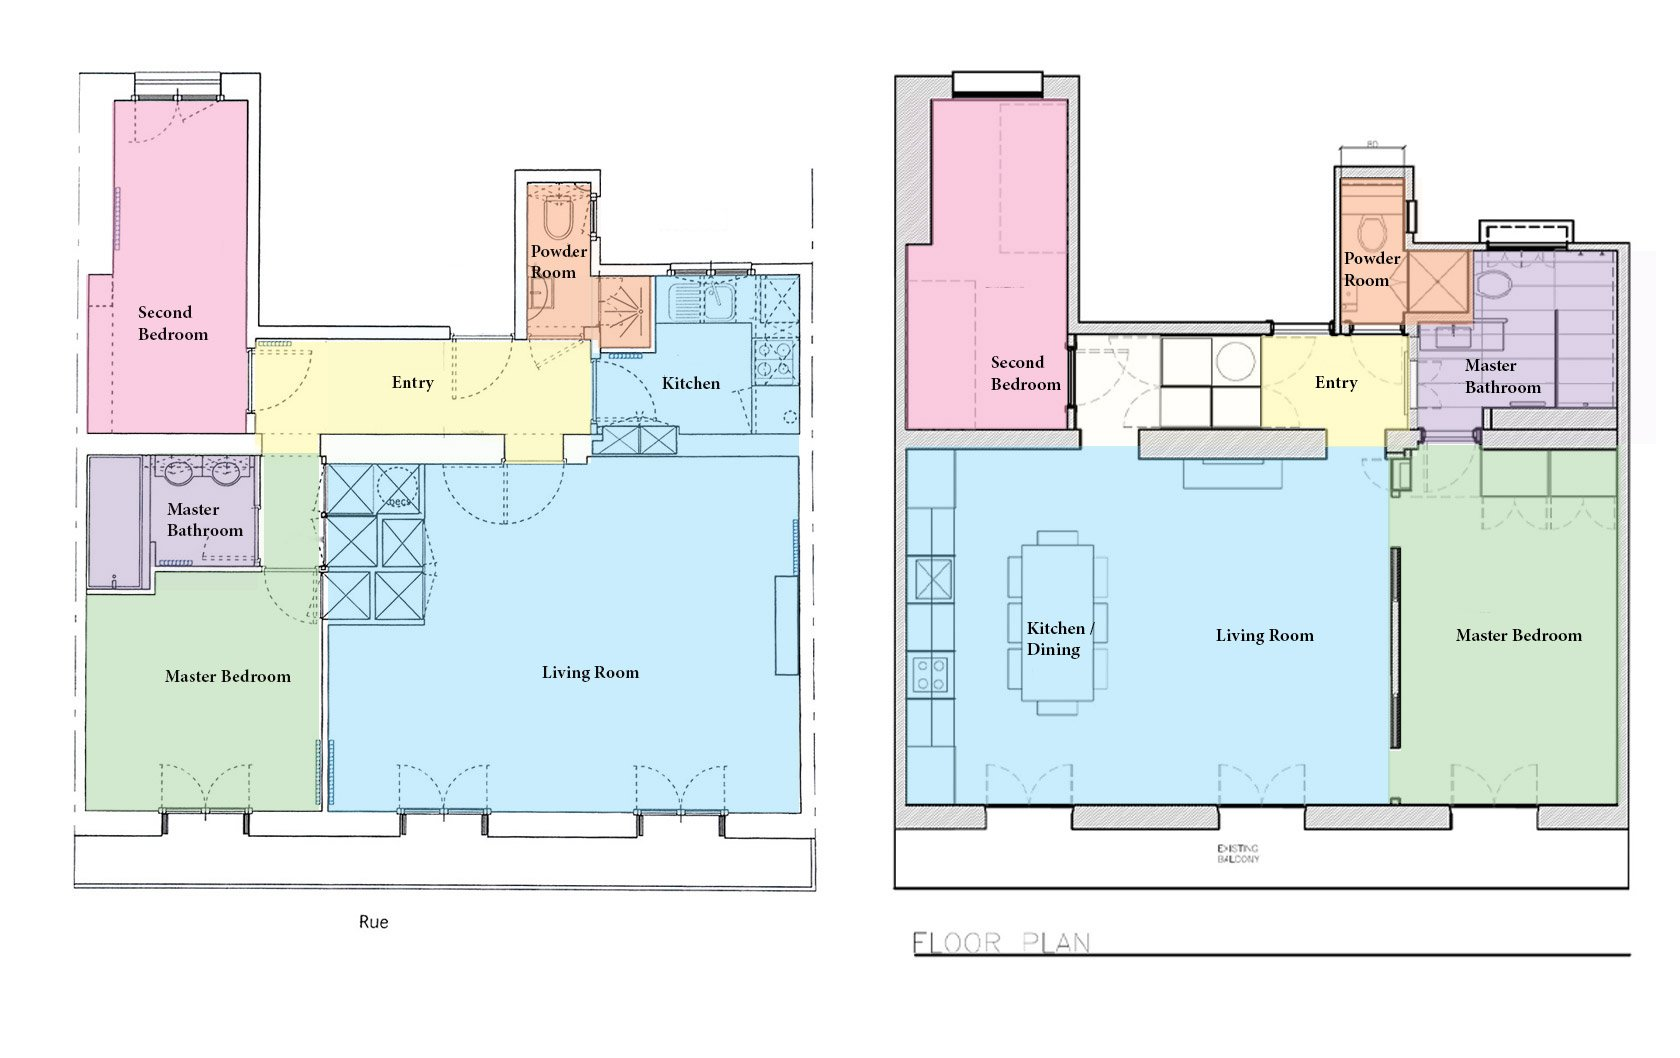 merlot-both-floorplans-colored